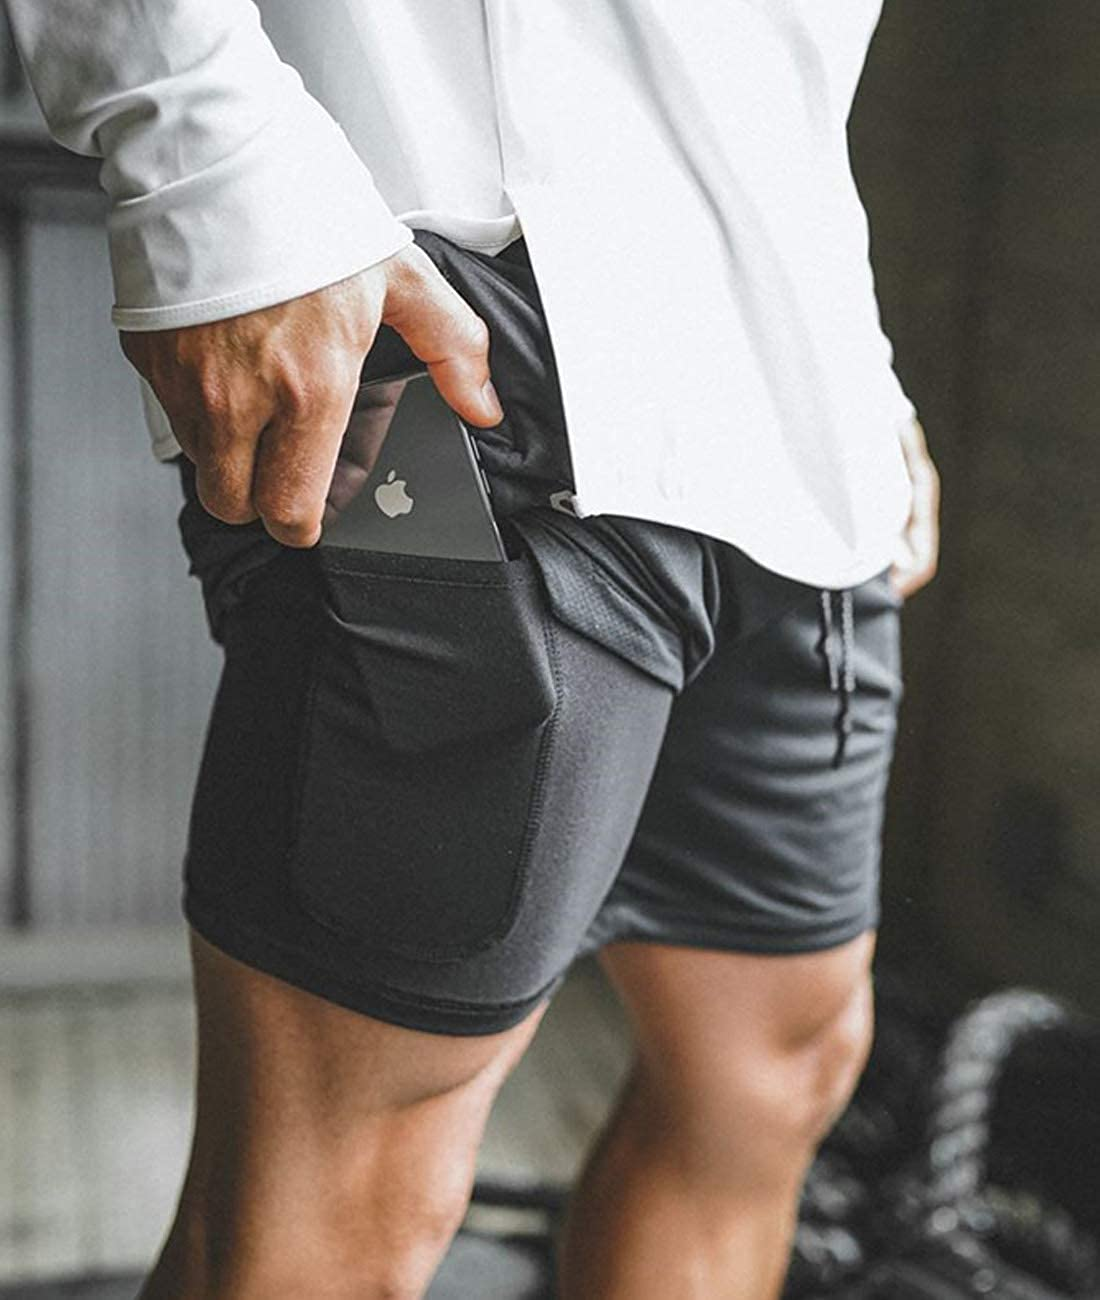 Men 2 in 1 Shorts Athletic,Built-in Quick-Dry Liner,with Towel Loop for Training,Jogger Running,Crossfit Weight Lifting.